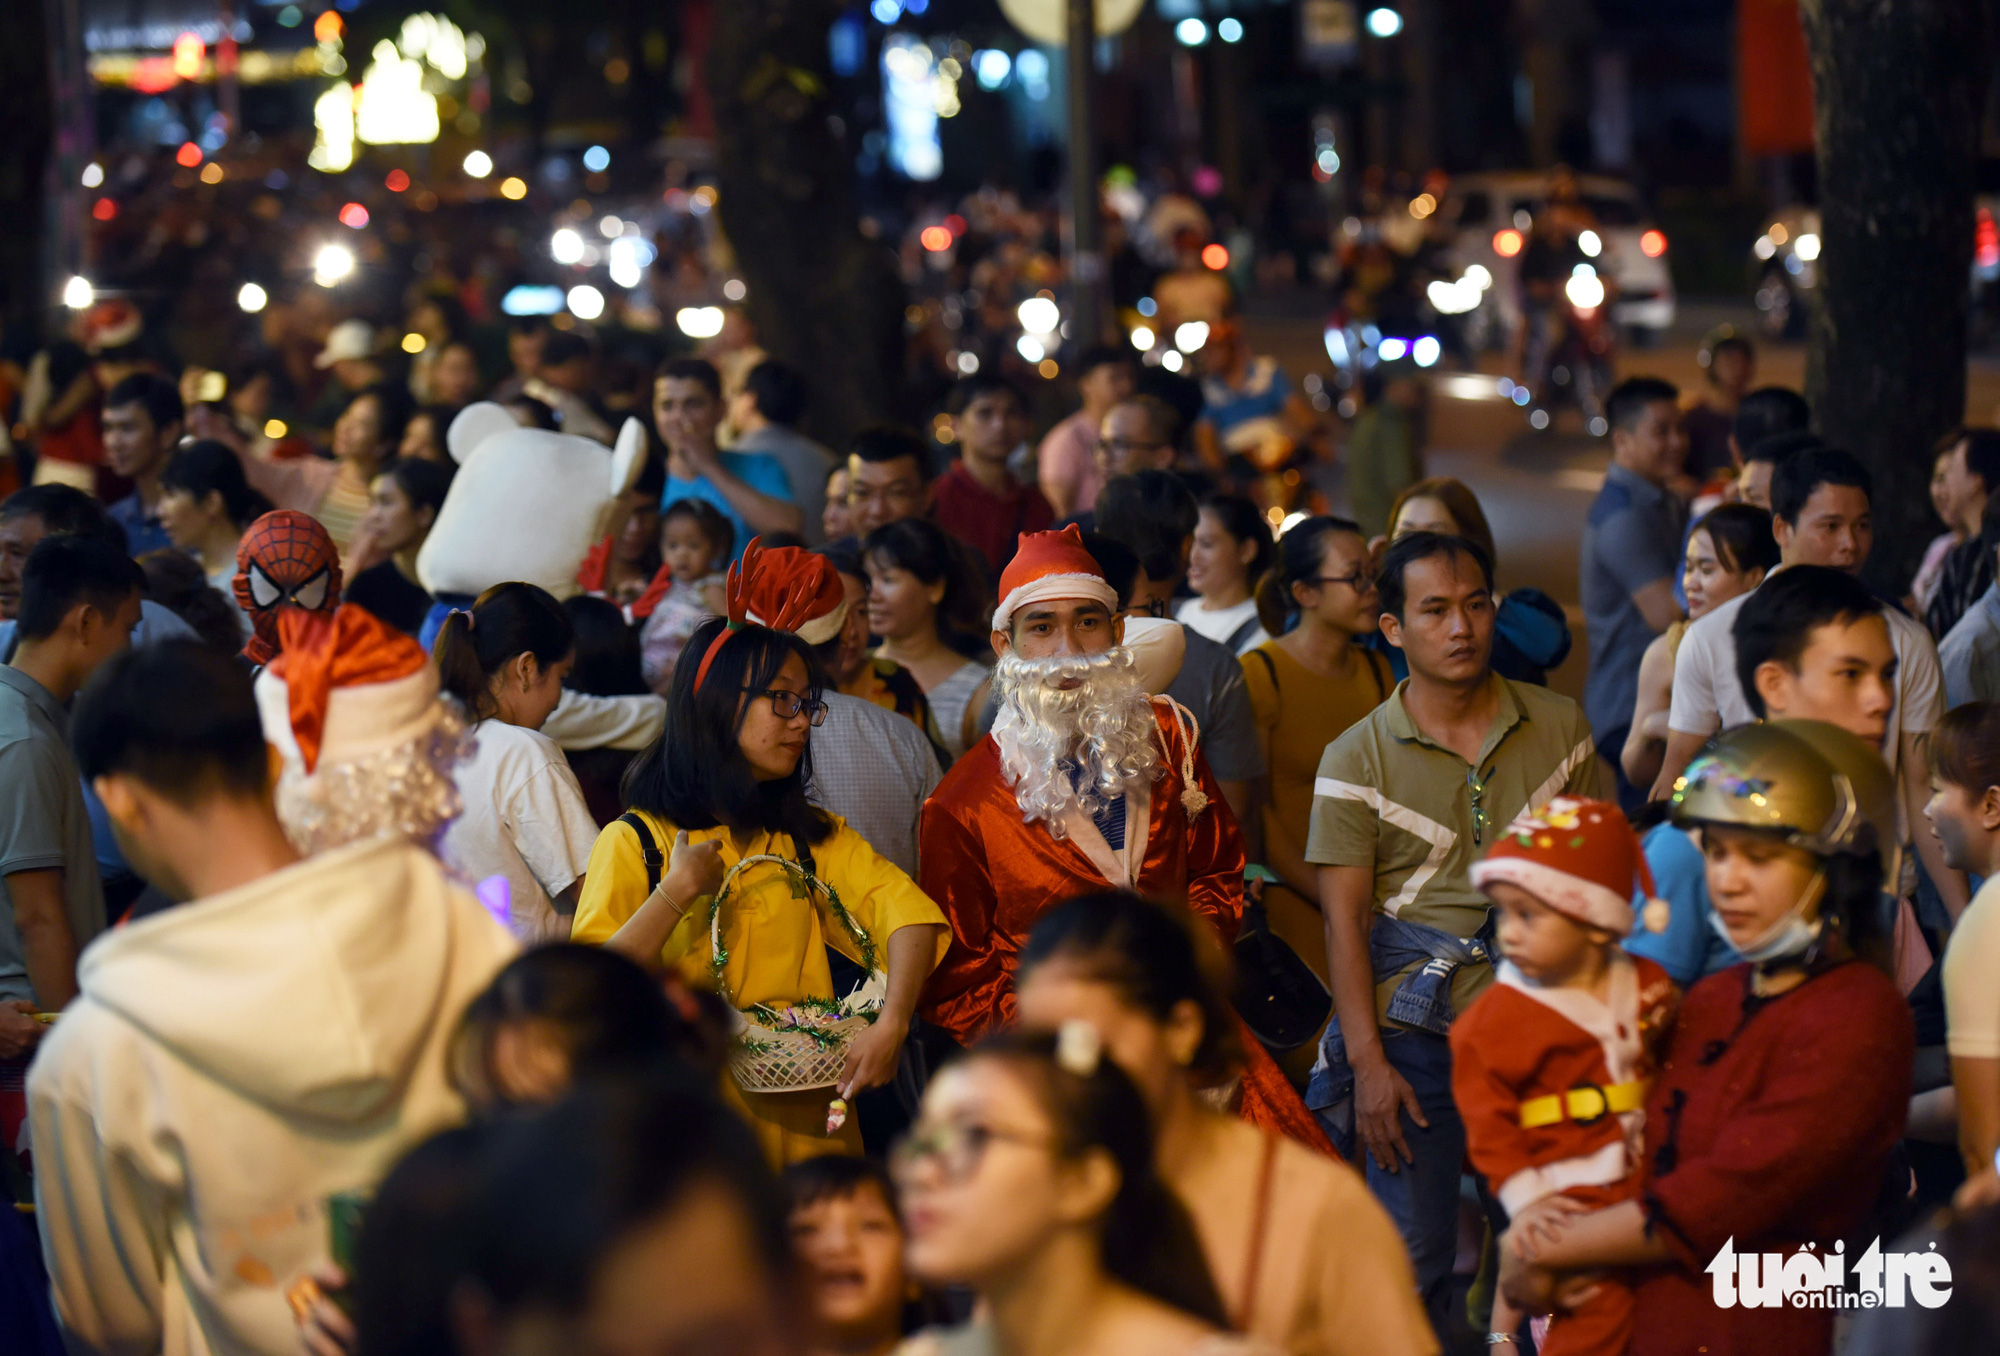 A young man dresses up as Santa Claus in front of a shopping mall in District 1, Ho Chi Minh City on December 24, 2019.